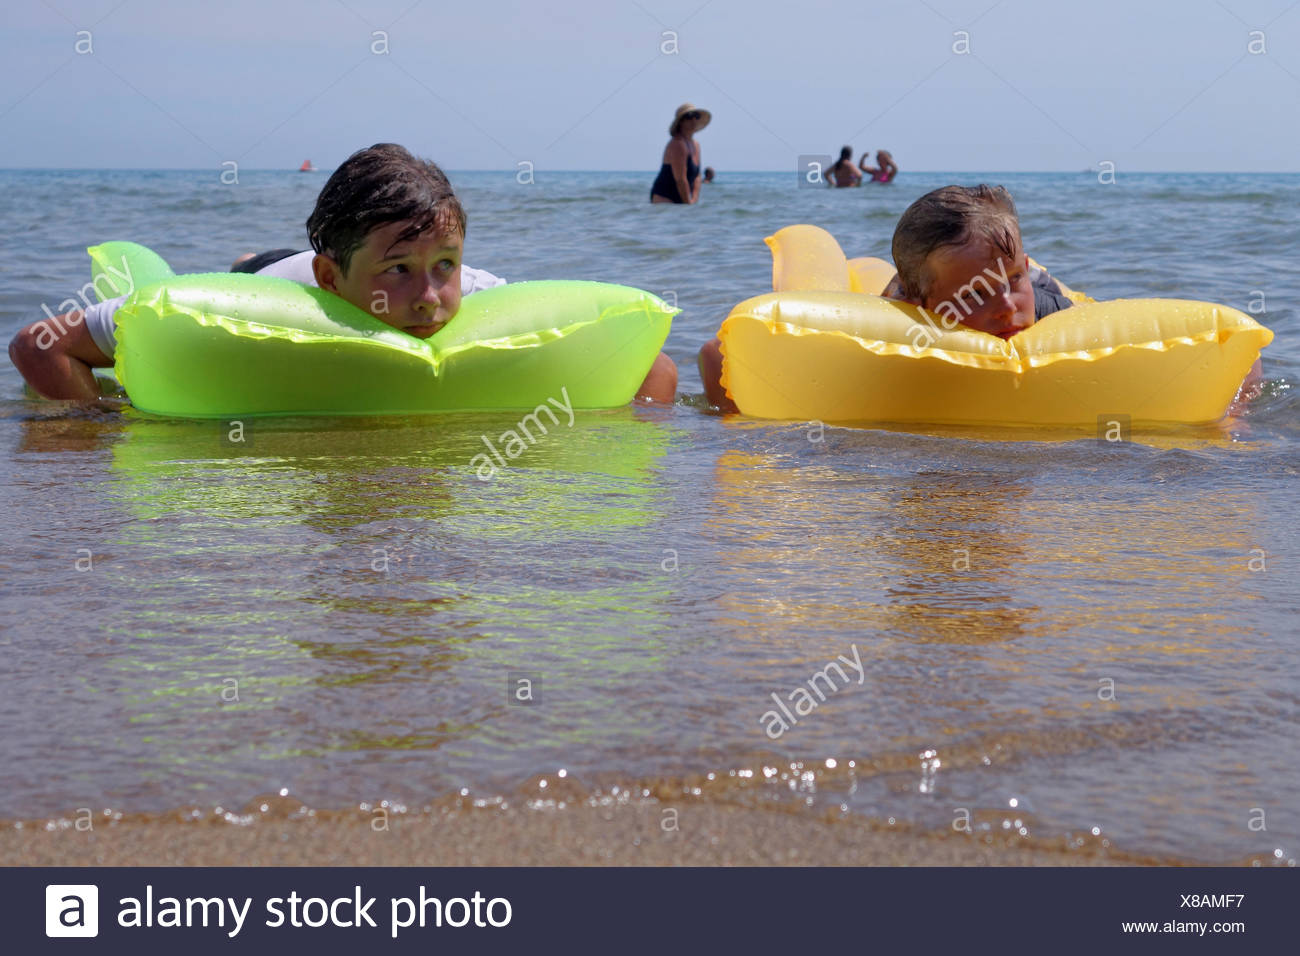 Populonia, Italy, two boys are bored on their air mattresses in the sea - Stock Image